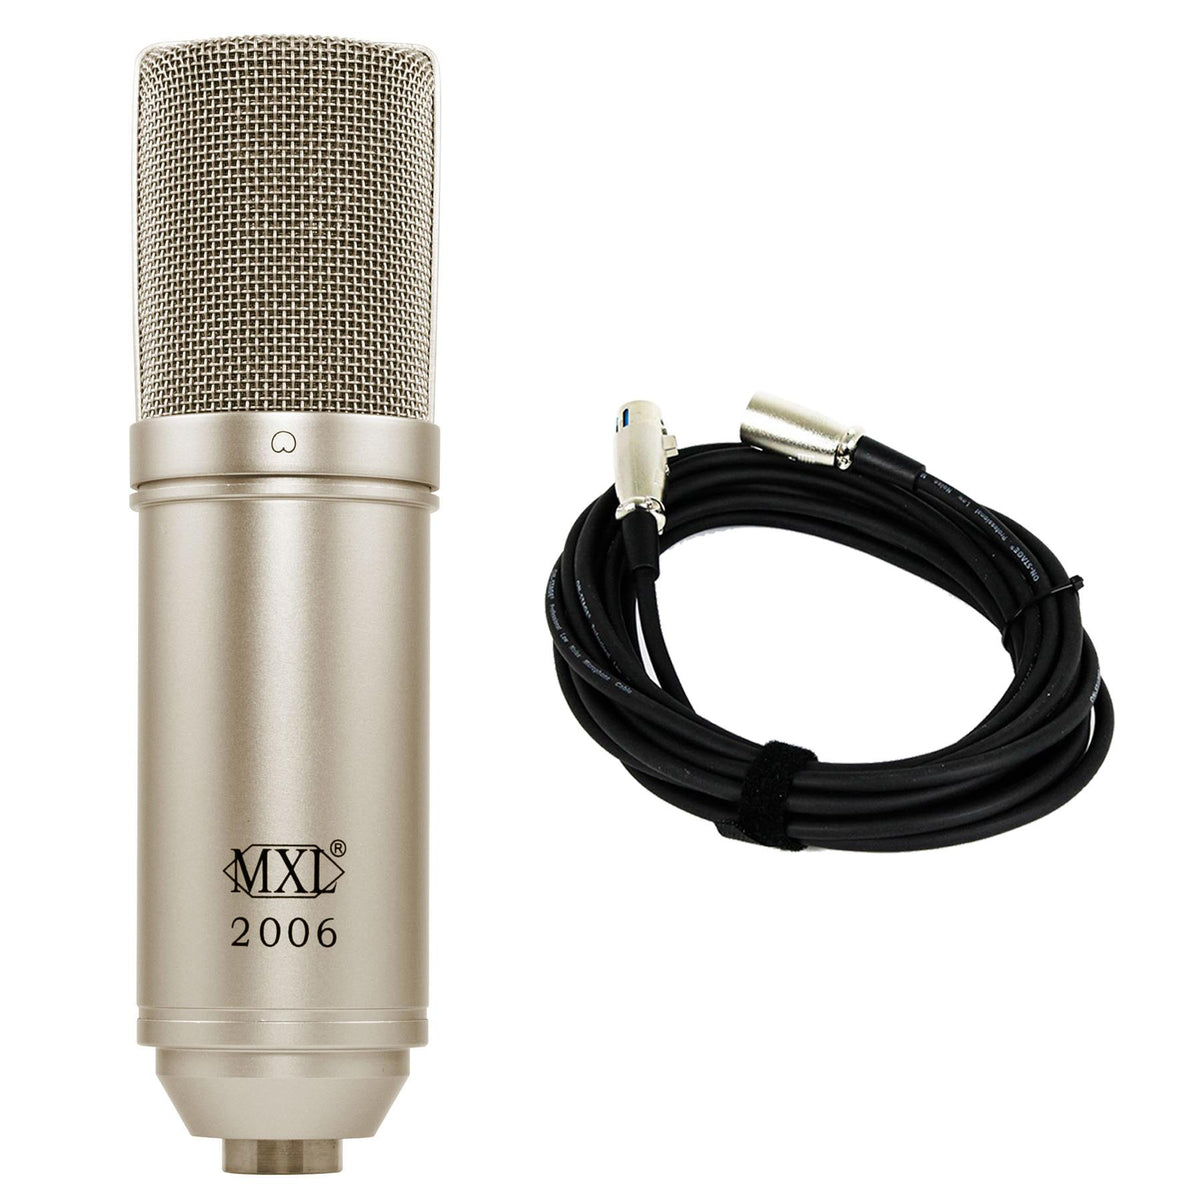 MXL 2006 Microphone Bundle with 20-foot XLR Cable